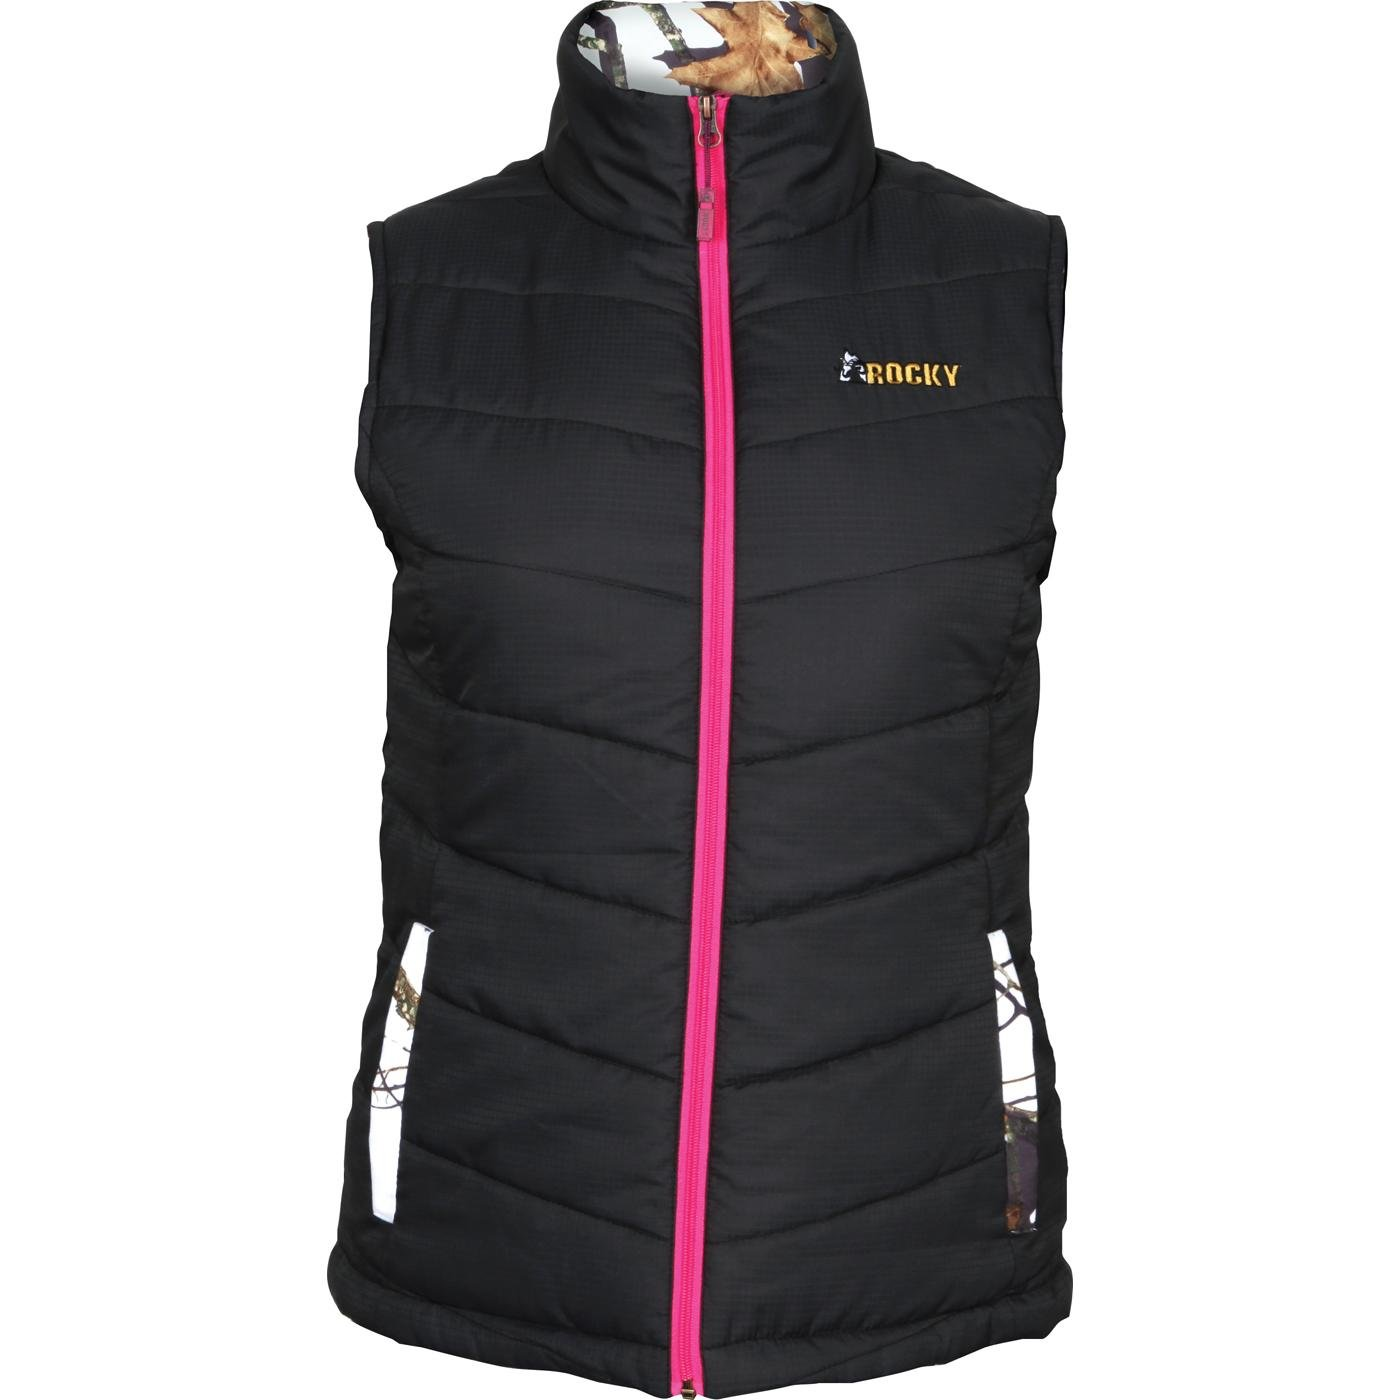 Rocky Women's Quilted Vest, Black, Large by Rocky